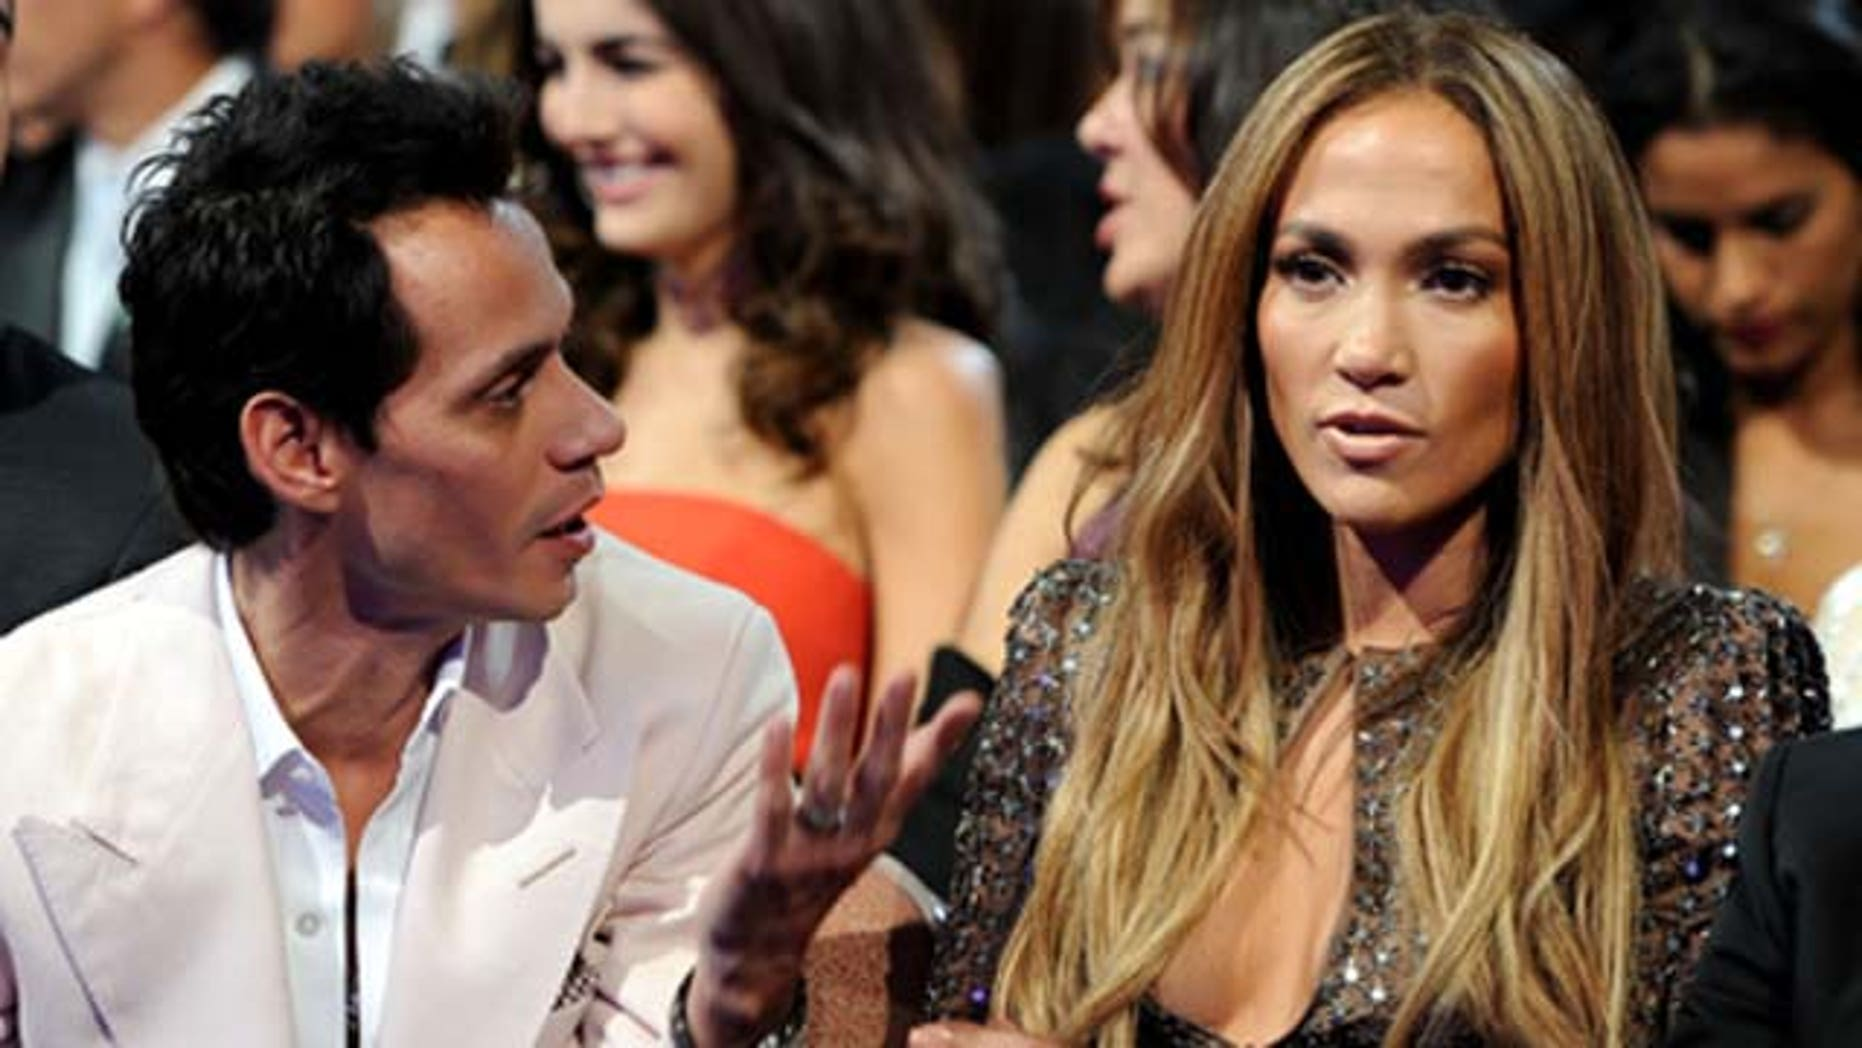 Nov. 11, 2010: Jennifer Lopez and Marc Anthony appear onstage during the 11th annual Latin Grammy Awards at the Mandalay Bay Events Center in Las Vegas, Nev.